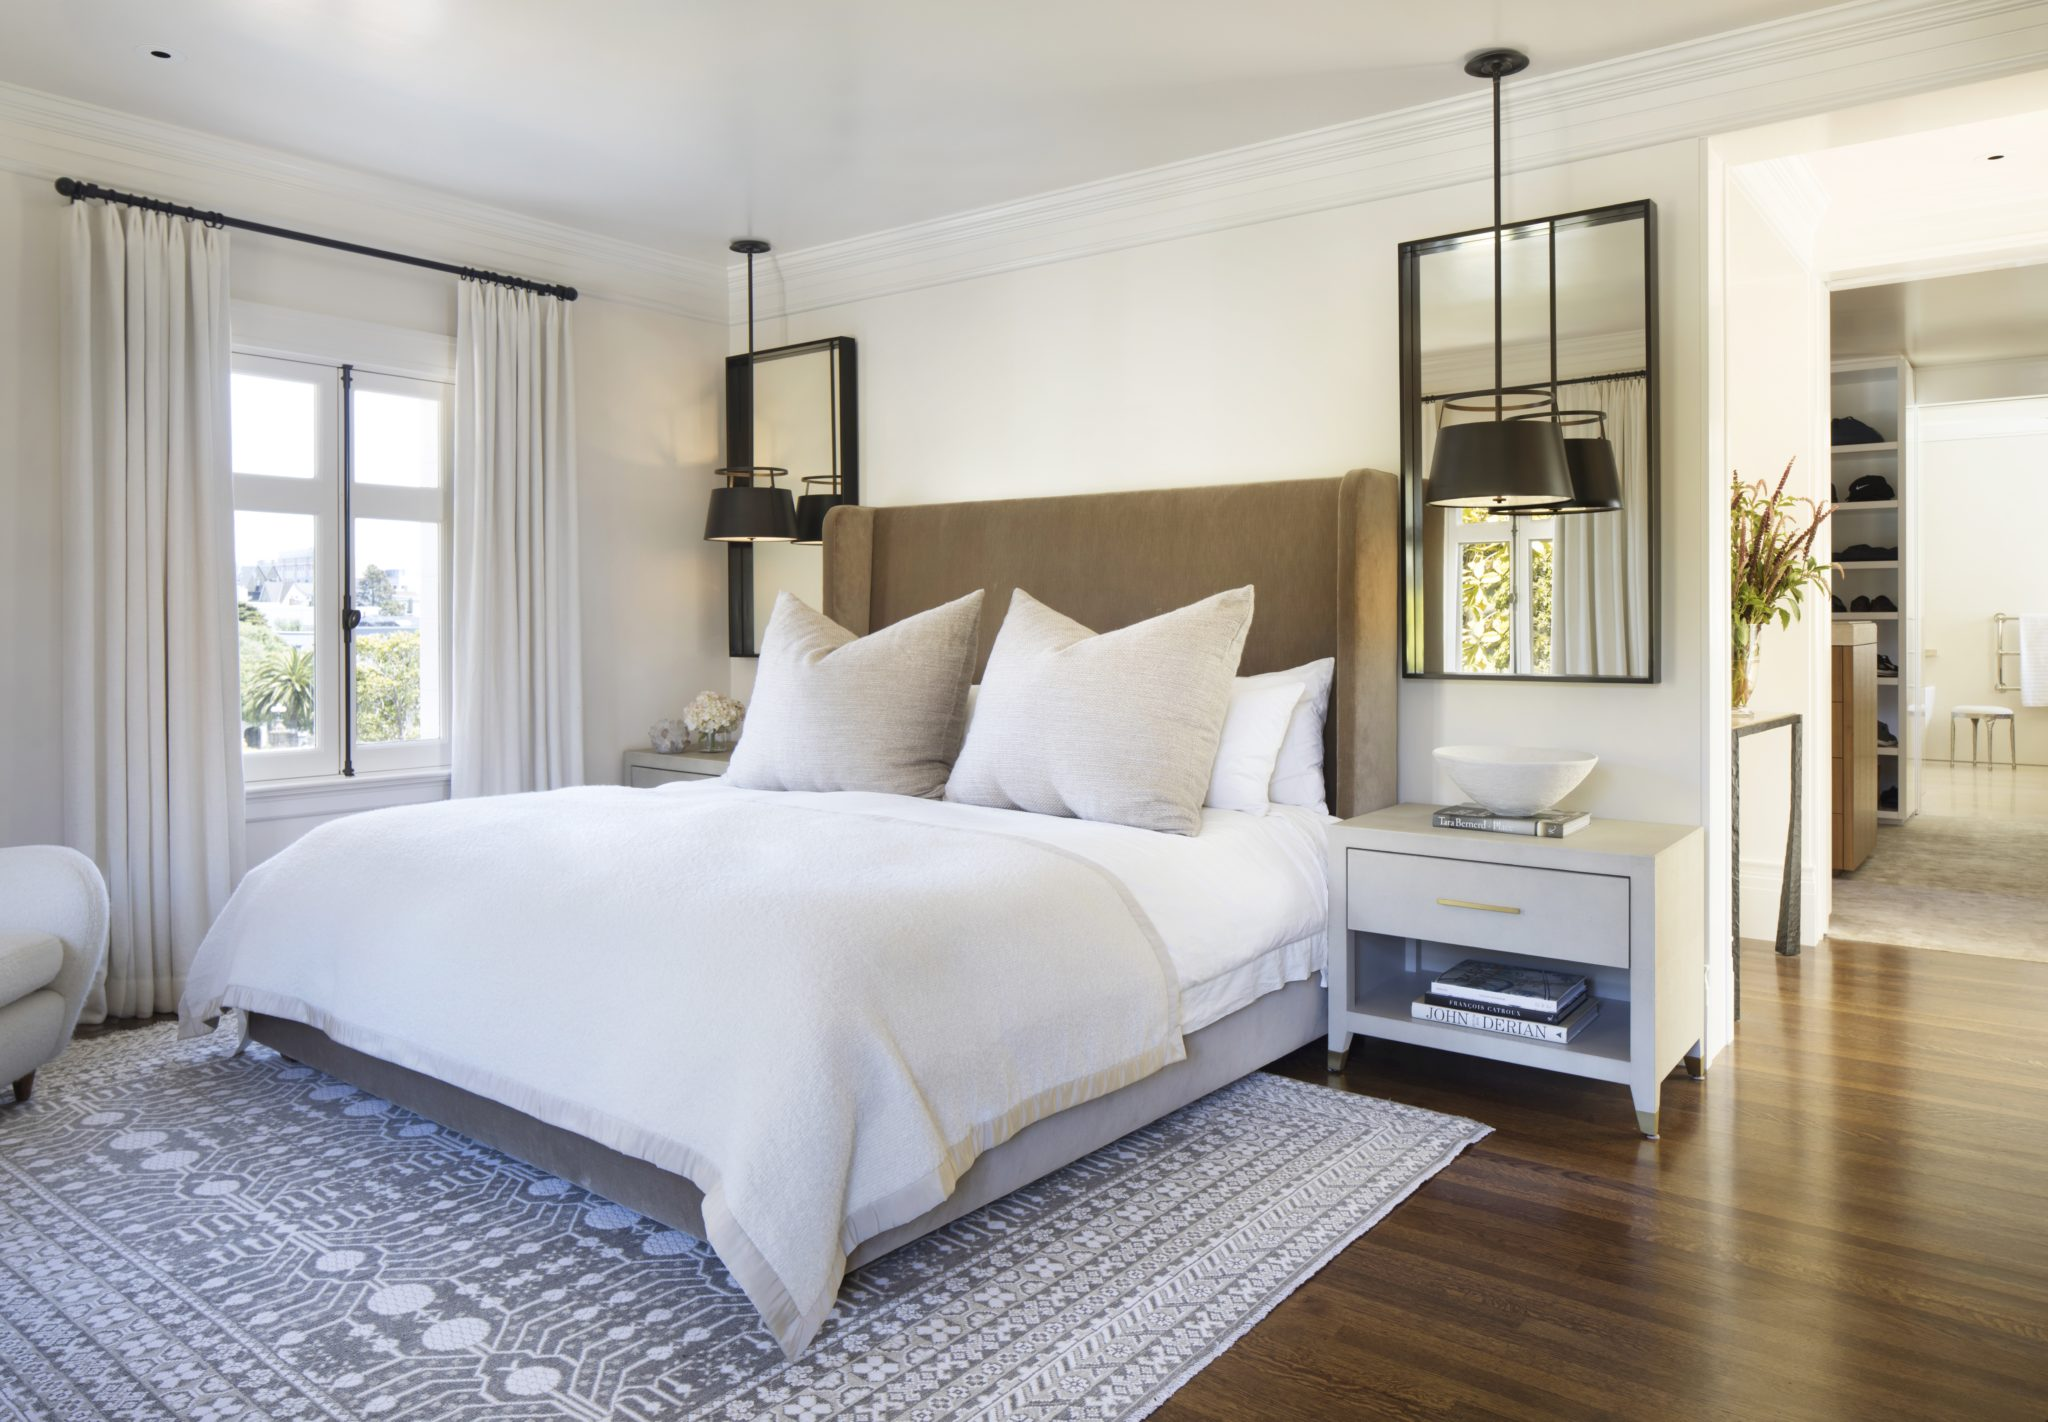 8 Bedrooms with Bedside Pendant Lighting - Chairish Blog